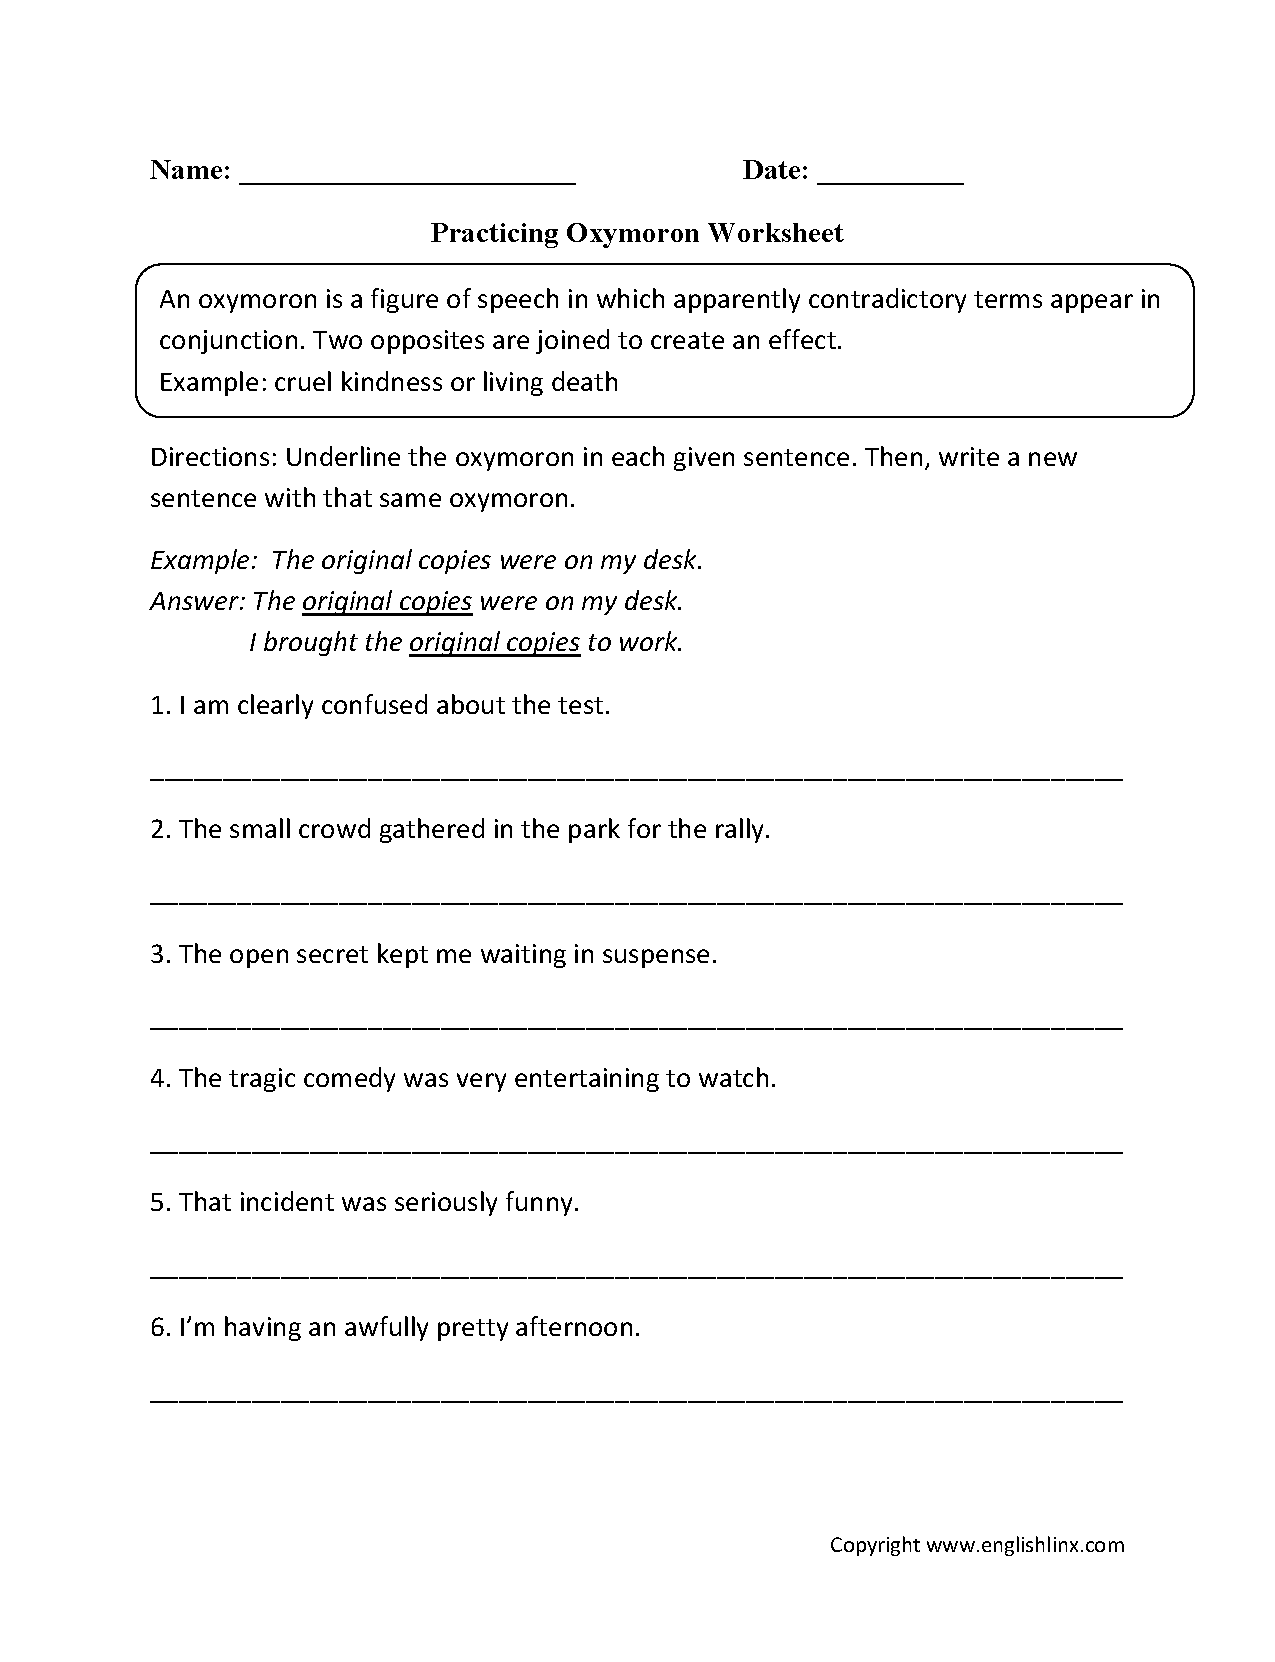 worksheet Act English Practice Worksheets figurative language worksheets oxymoron practicing onomatopoeia worksheet